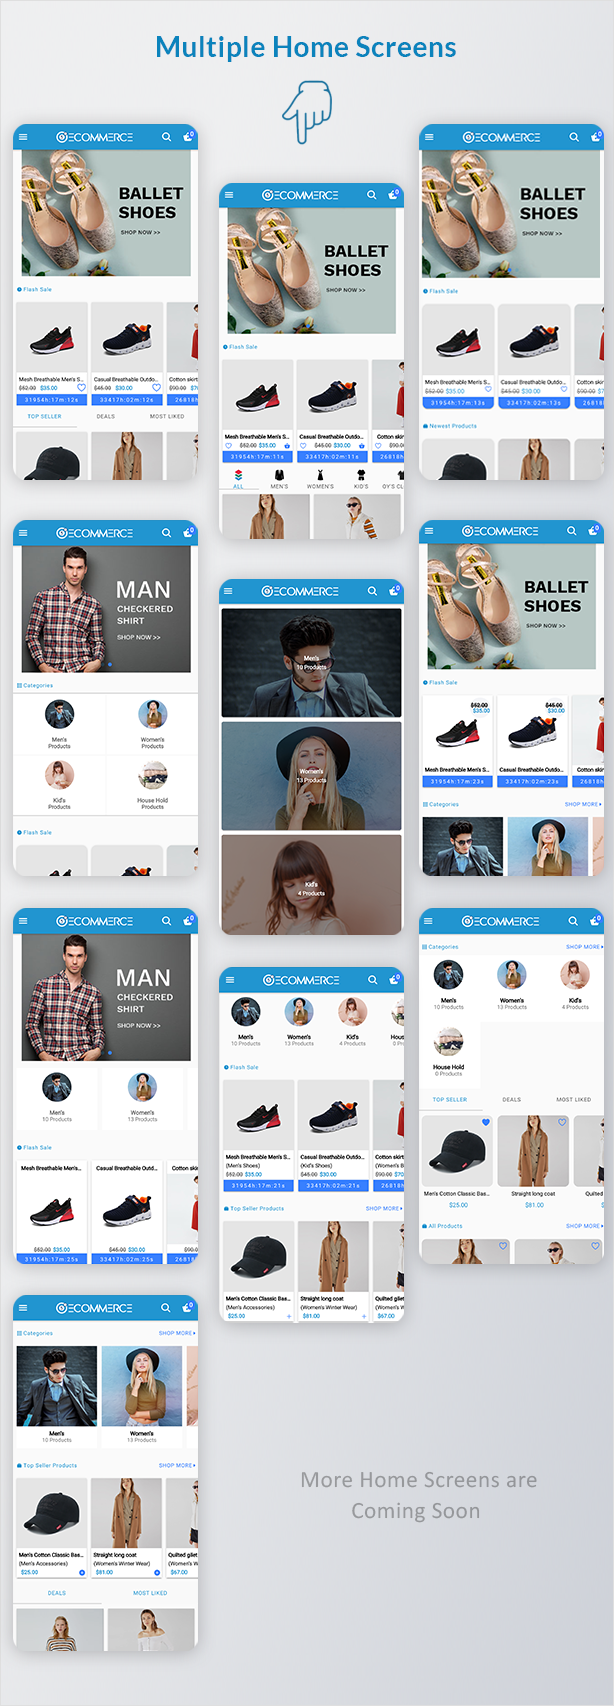 Ionic5 Ecommerce - Universal iOS & Android Ecommerce / Store Full Mobile App with Laravel CMS - 8